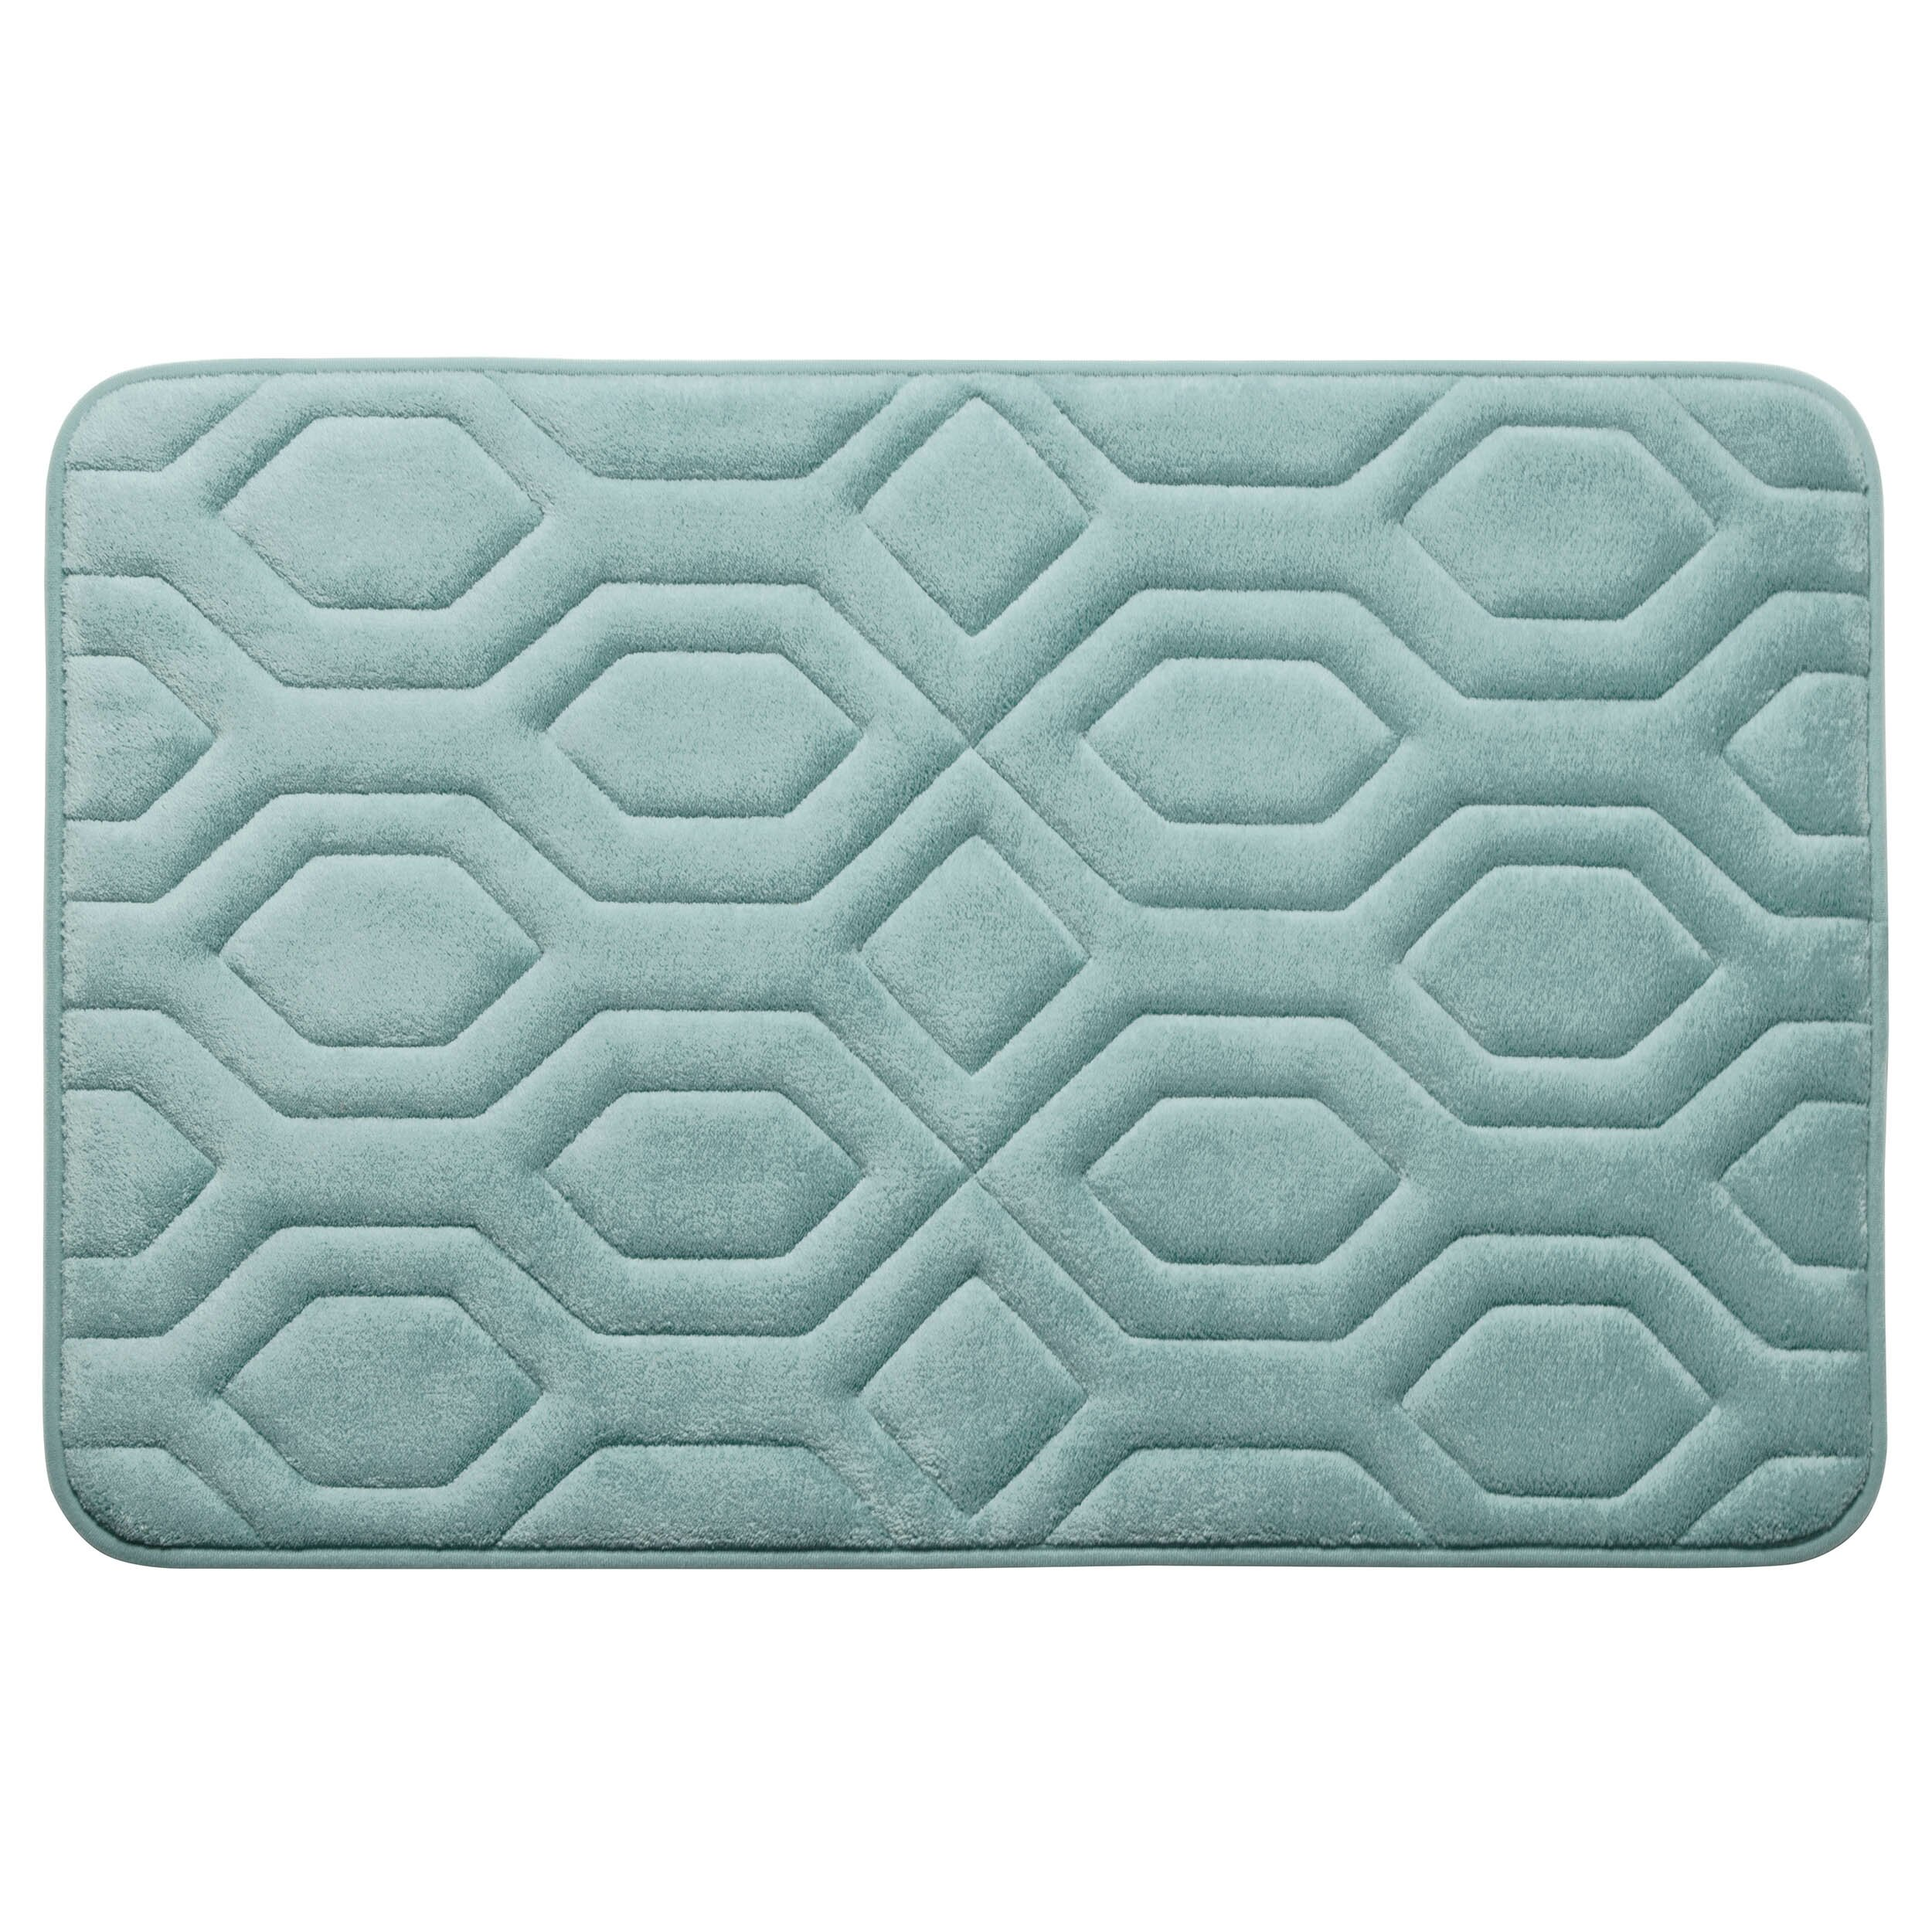 Bath Studio Turtle Shell Premium Micro Plush Memory Foam